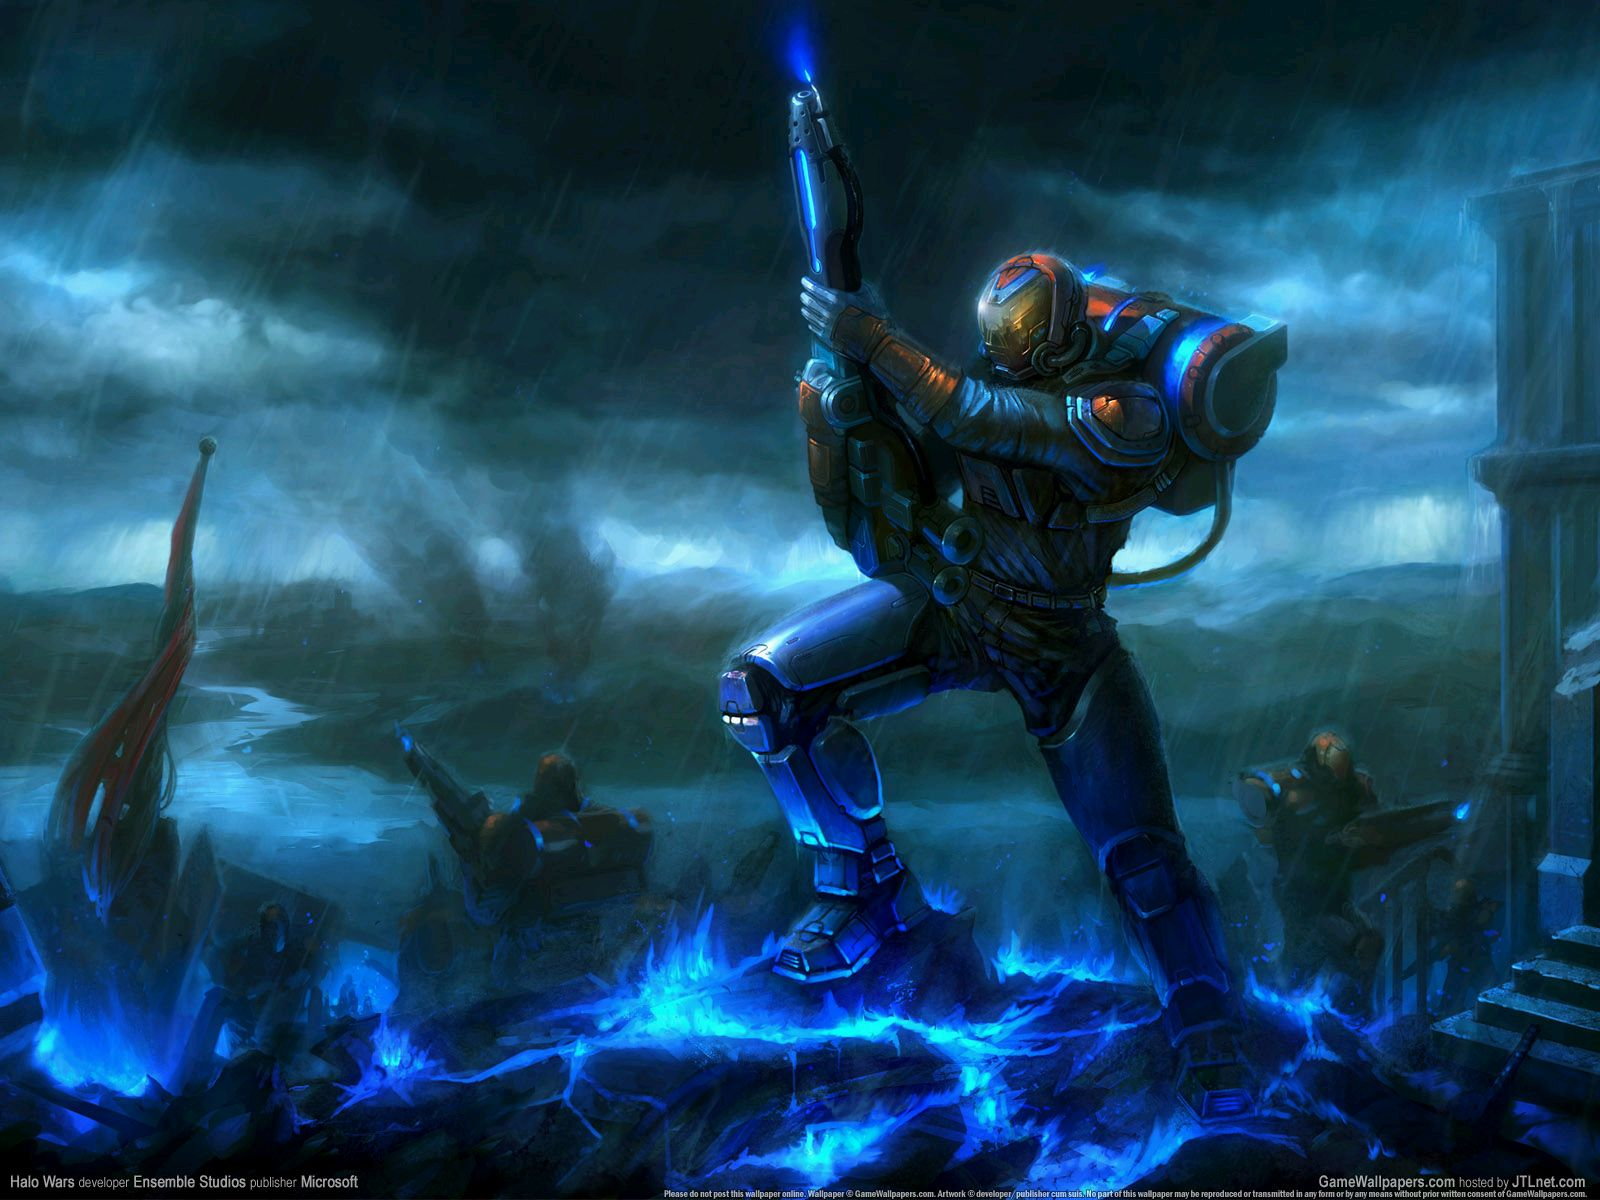 Gallery For gt Cool Halo Wars Wallpapers 1600x1200